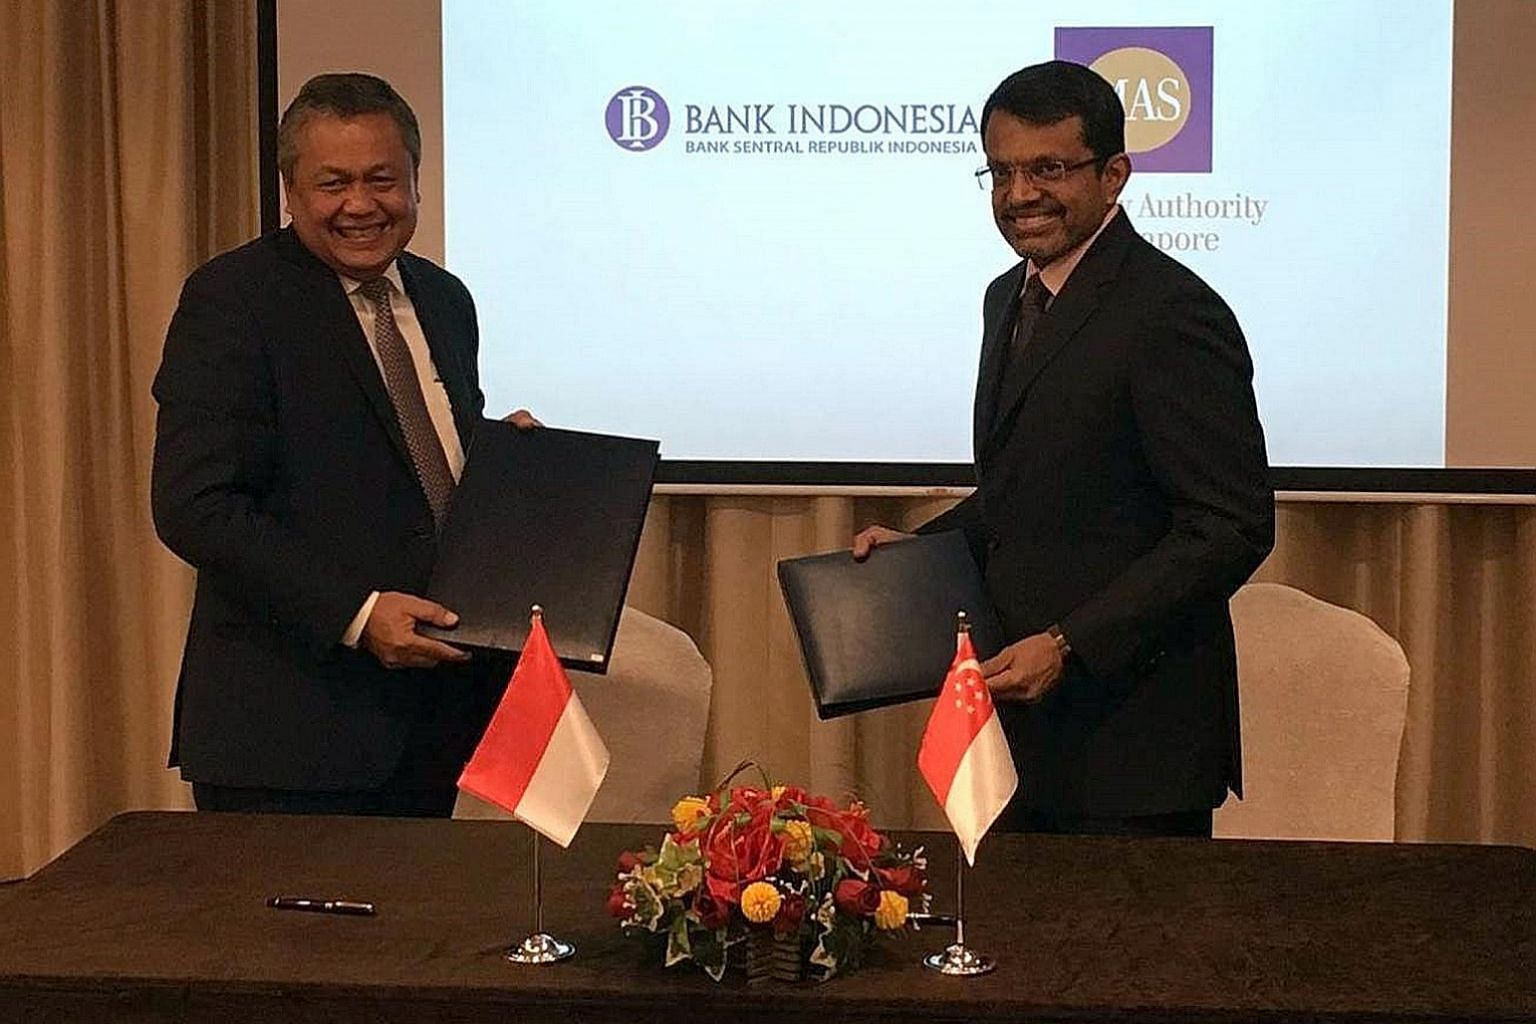 Bank Indonesia governor Perry Warjiyo (left) and Monetary Authority of Singapore managing director Ravi Menon at yesterday's signing ceremony for the bilateral financial arrangement.